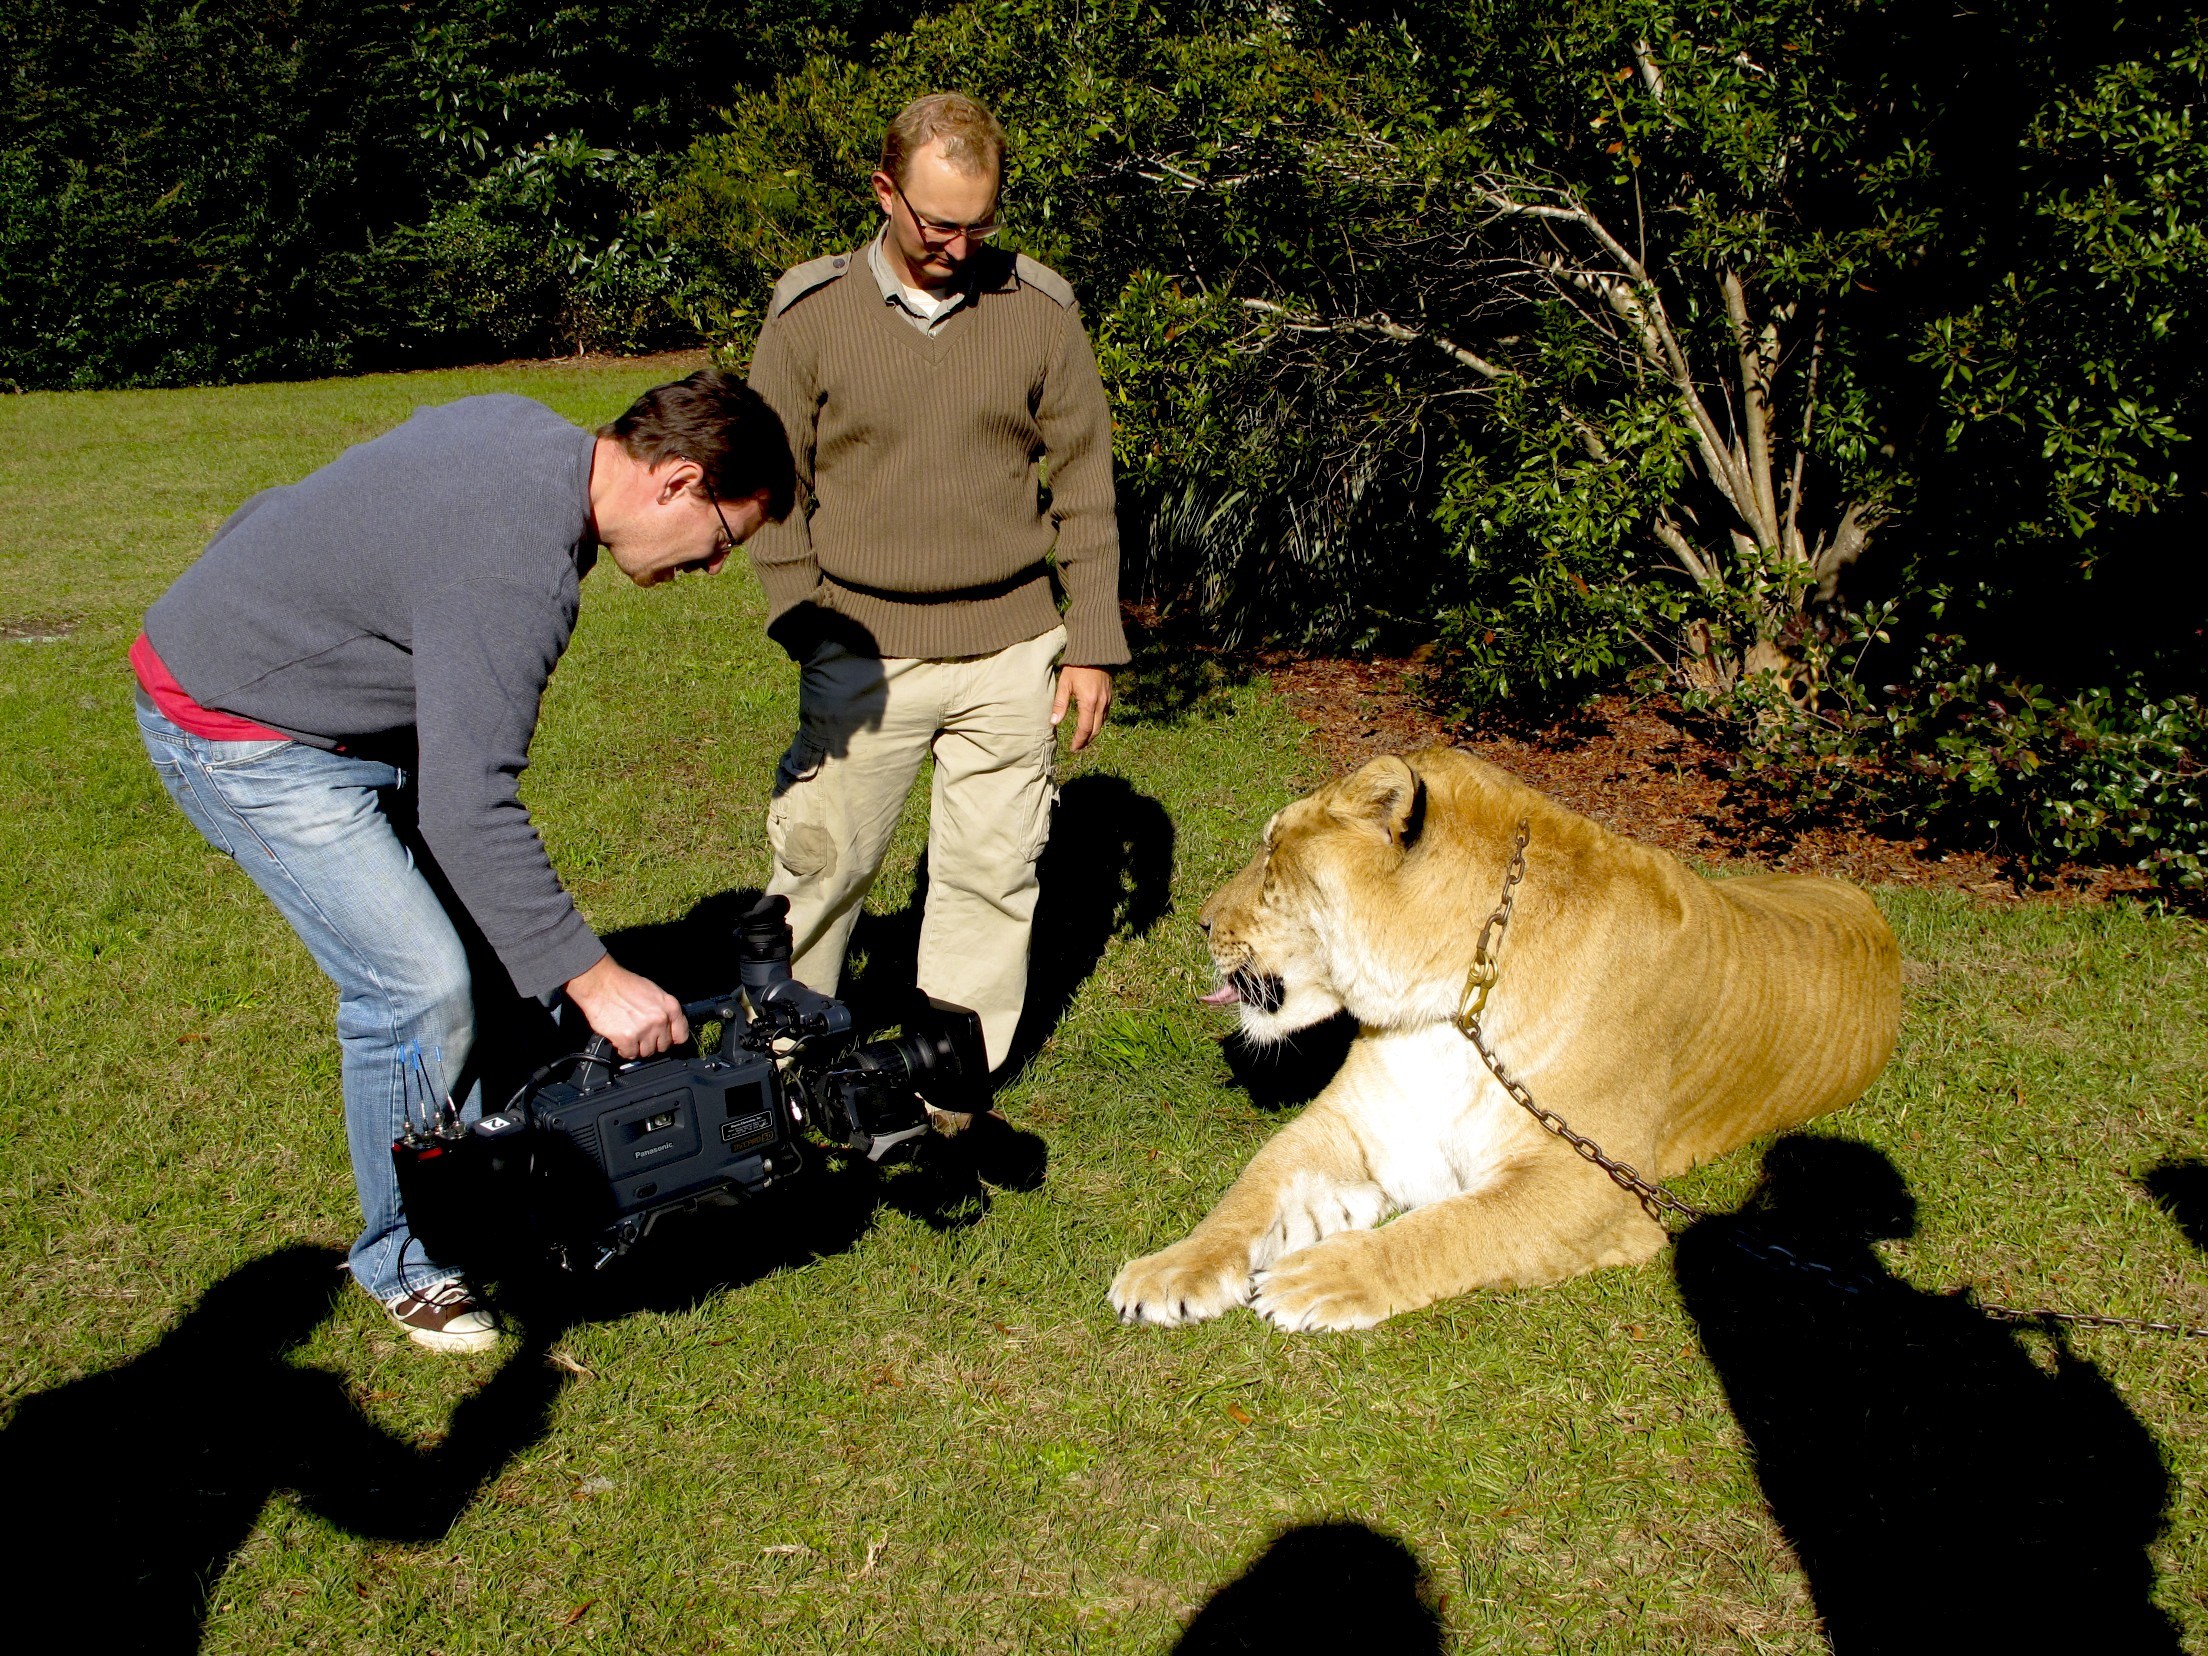 Liger close up Raleigh Video Crew and ABCs Nightline, Enter the Eye of the Liger